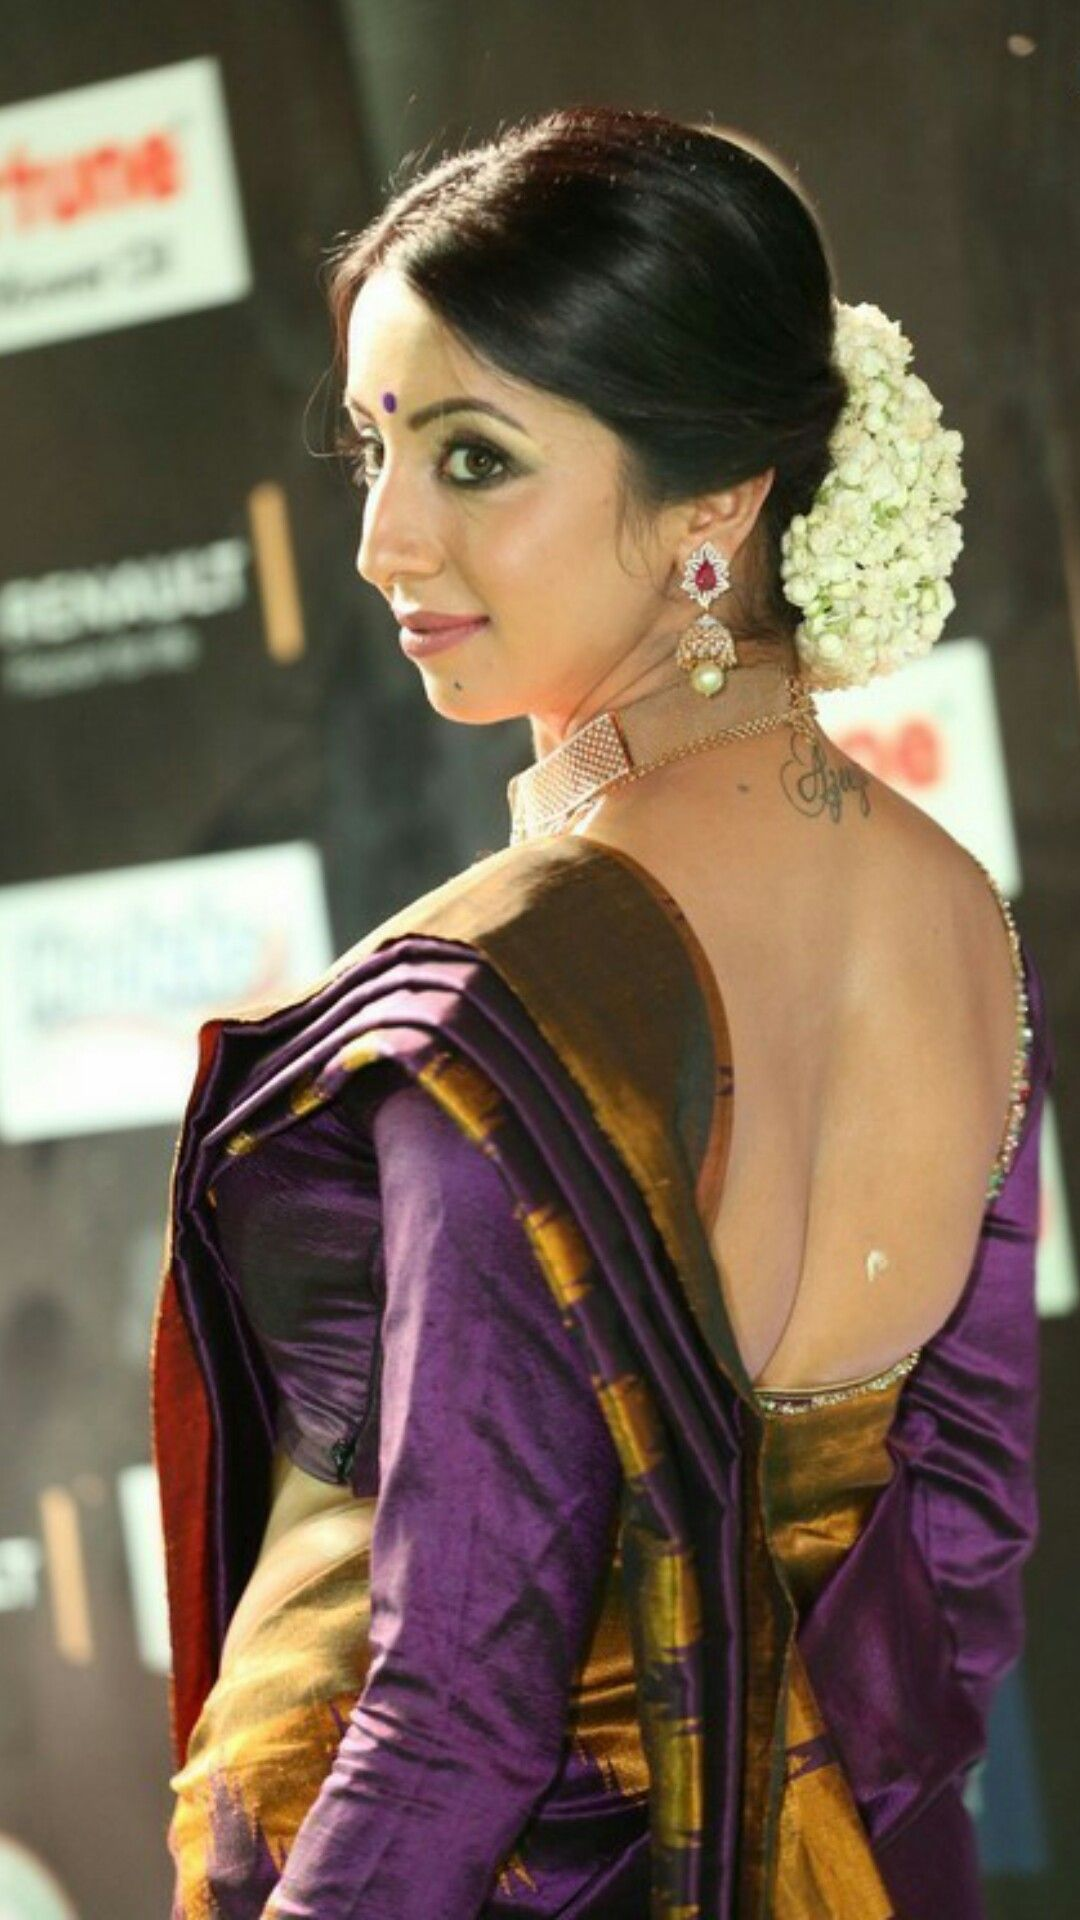 Pin by MOHAN on sandhya (With images) | Backless blouse, Saree